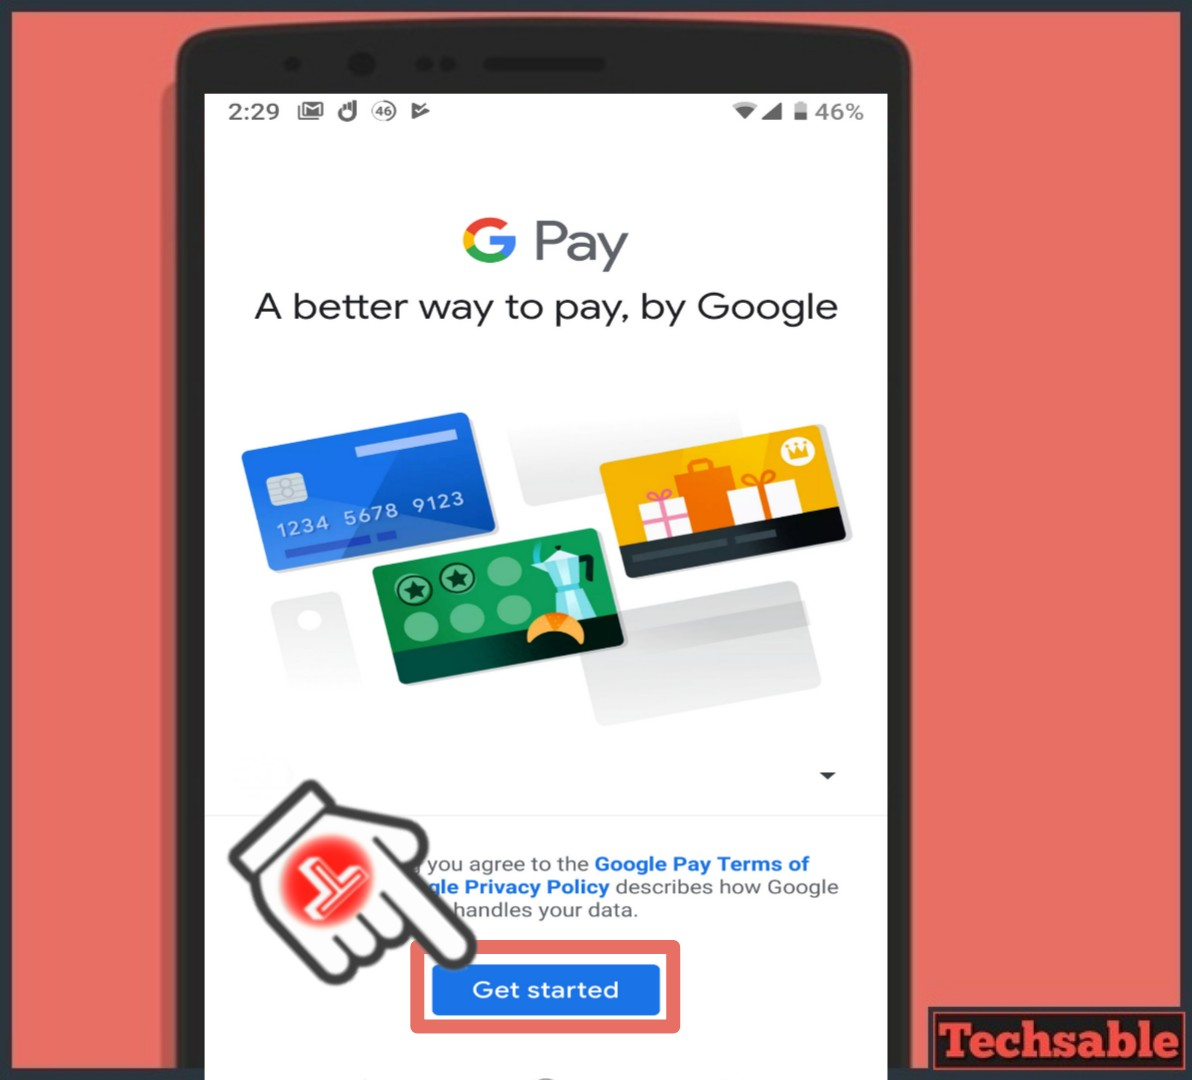 G pay get started